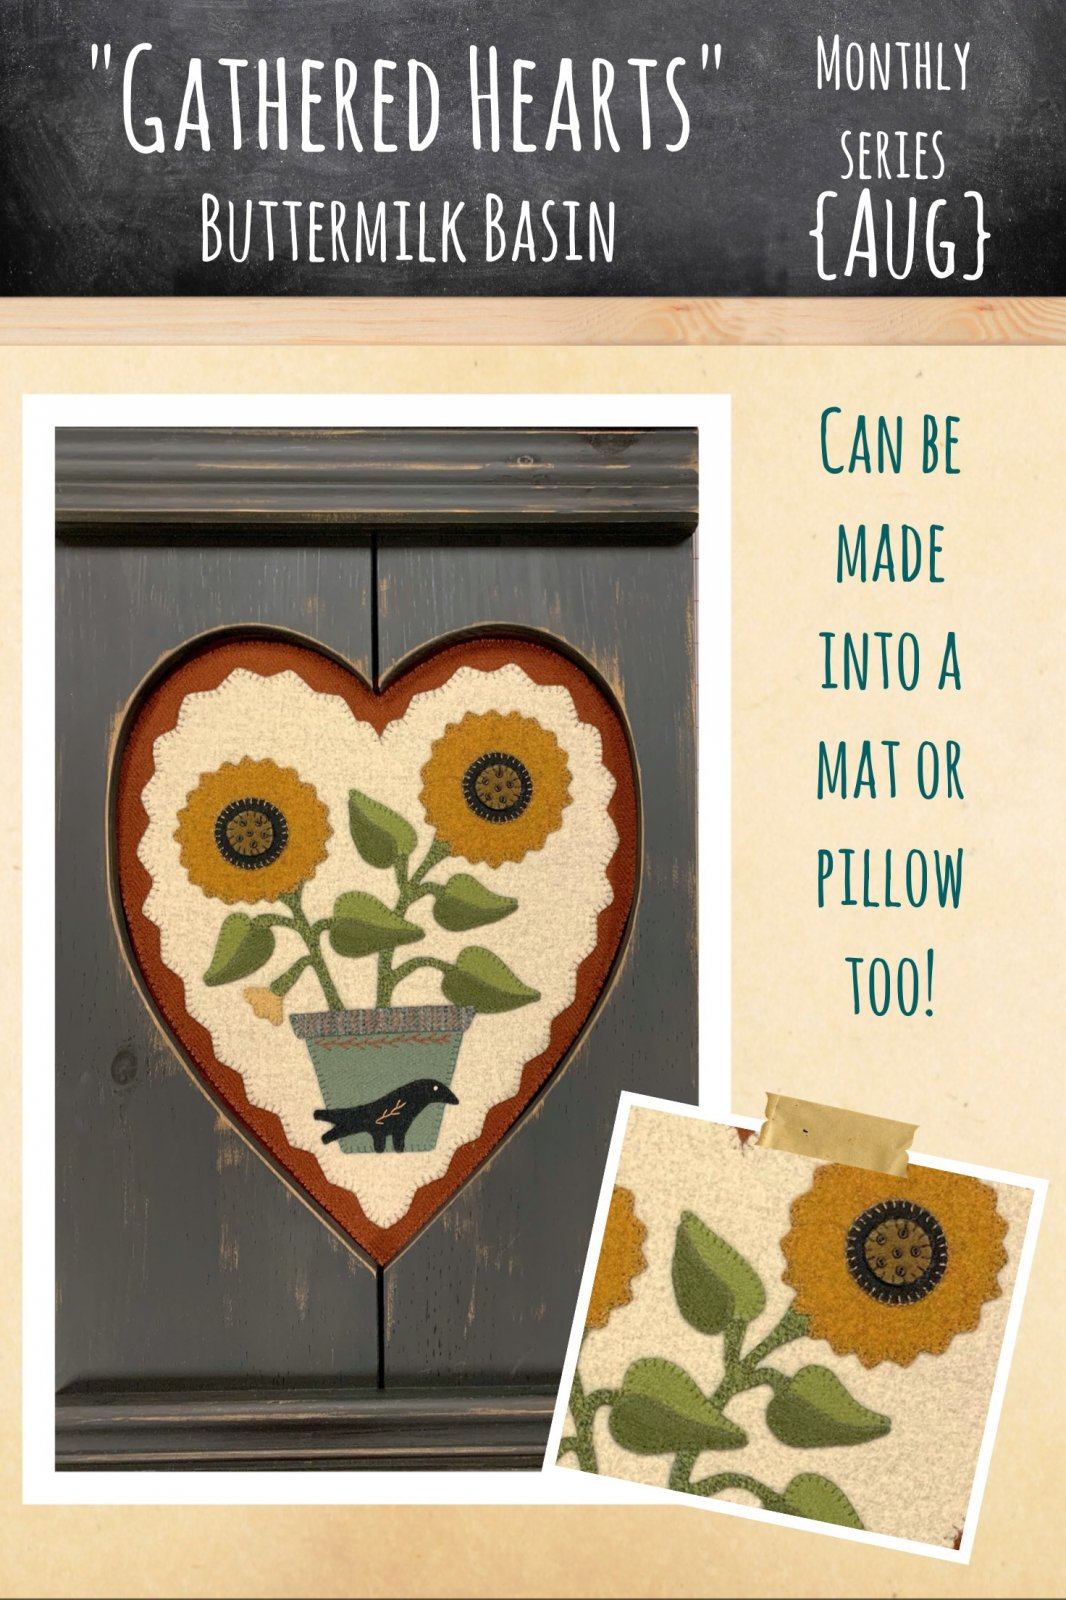 Gathered Hearts * August Kit & Pattern